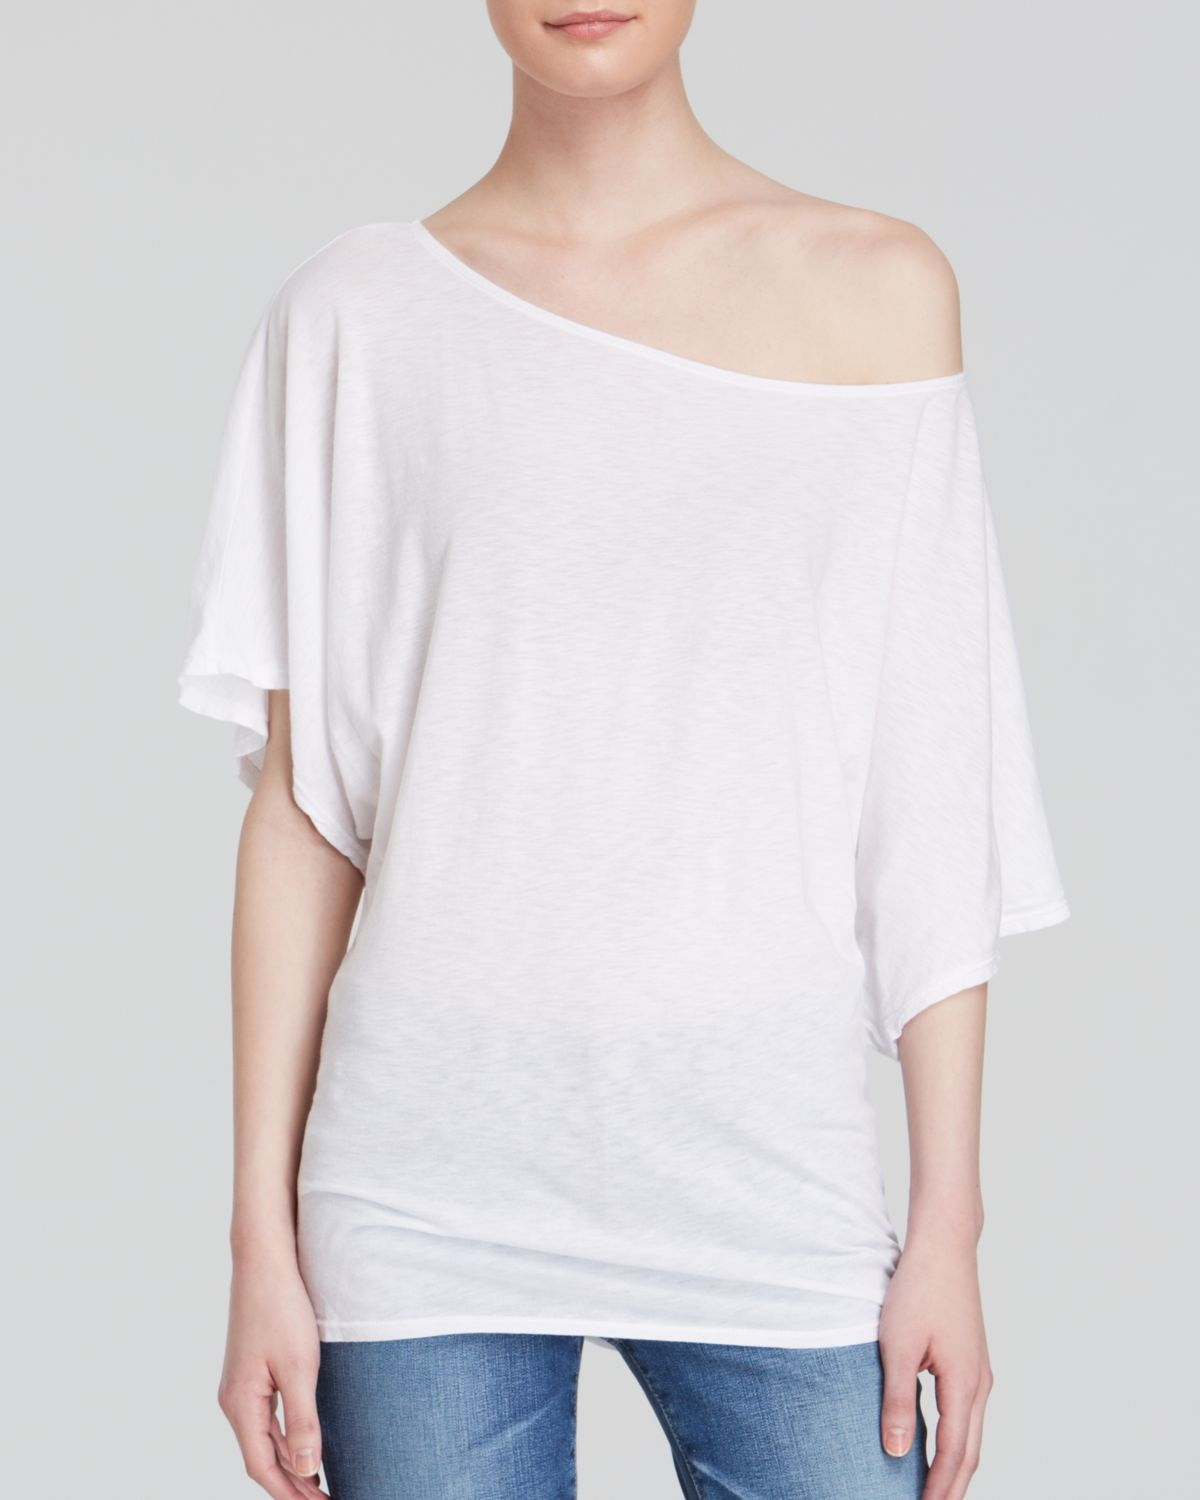 Michael stars dolman tee in white lyst for Michael stars tee shirts